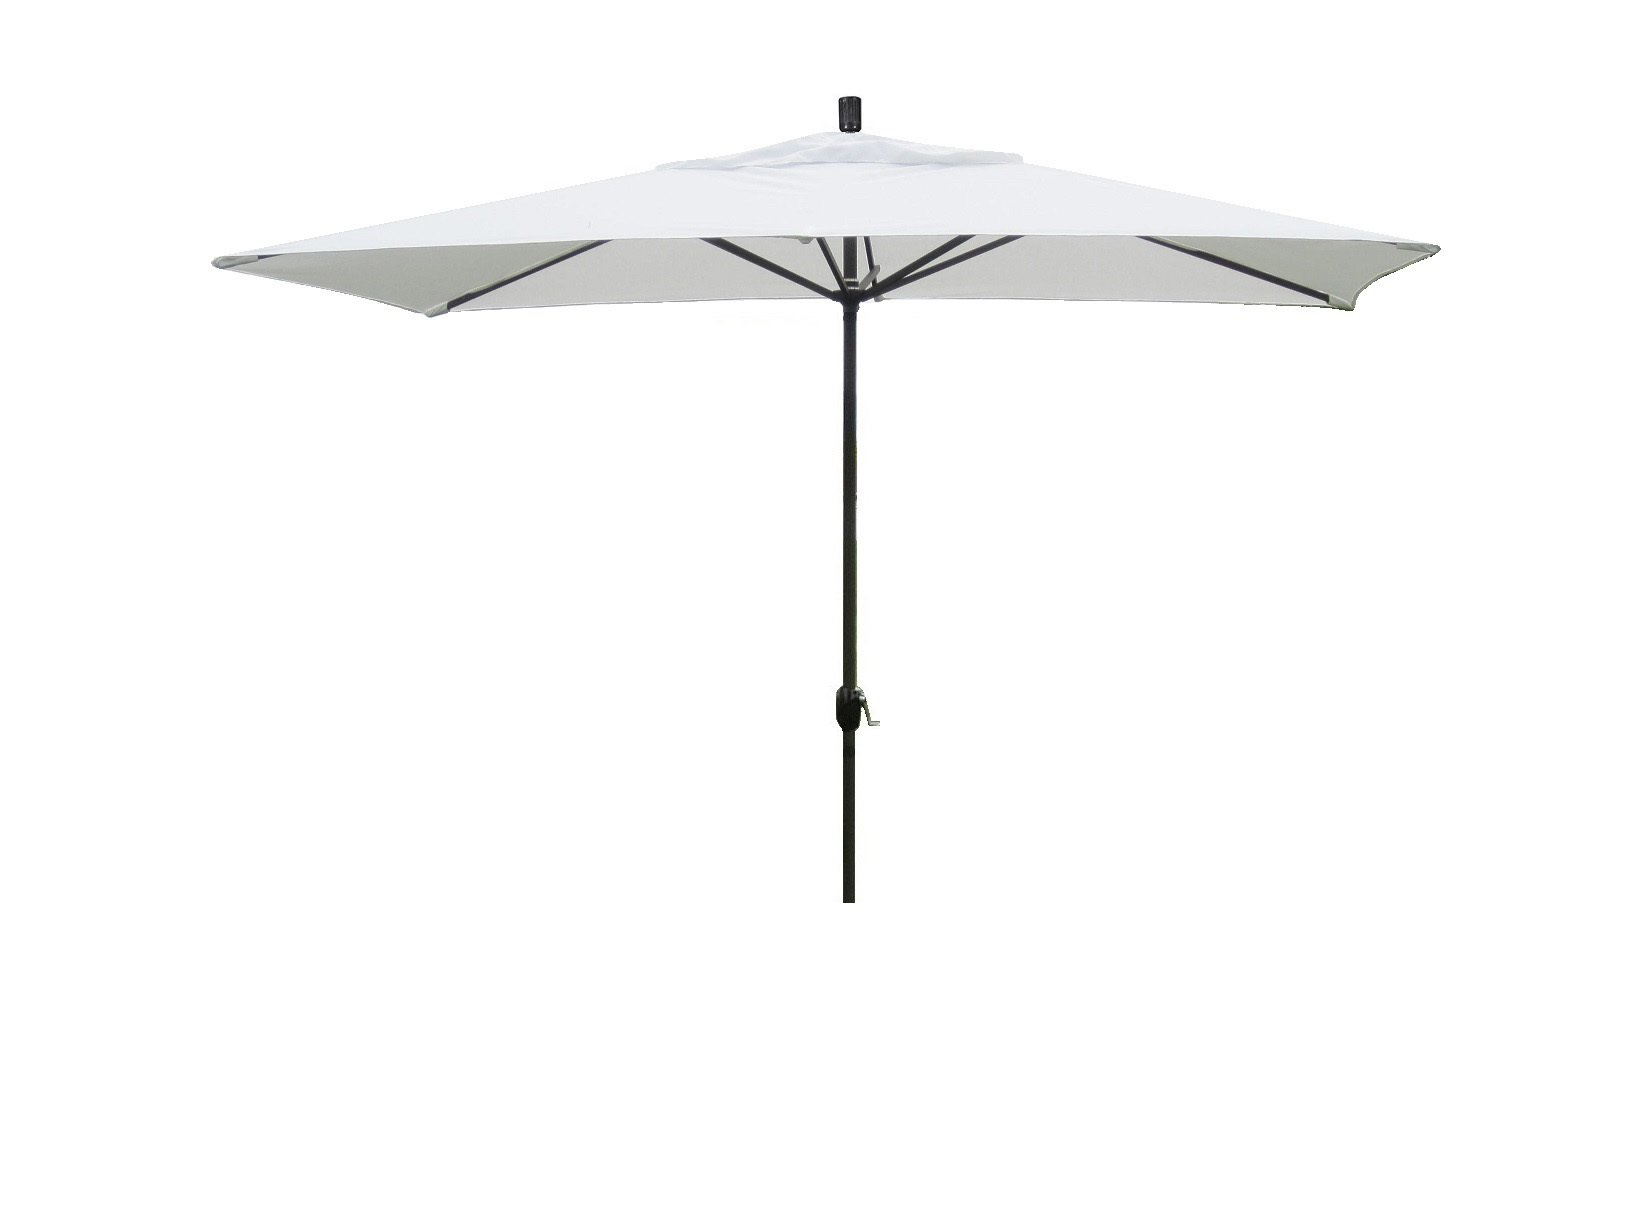 Bonview Rectangular Market Umbrellas Regarding Fashionable Northfleet 10' X 6' Rectangular Market Umbrella (View 10 of 20)